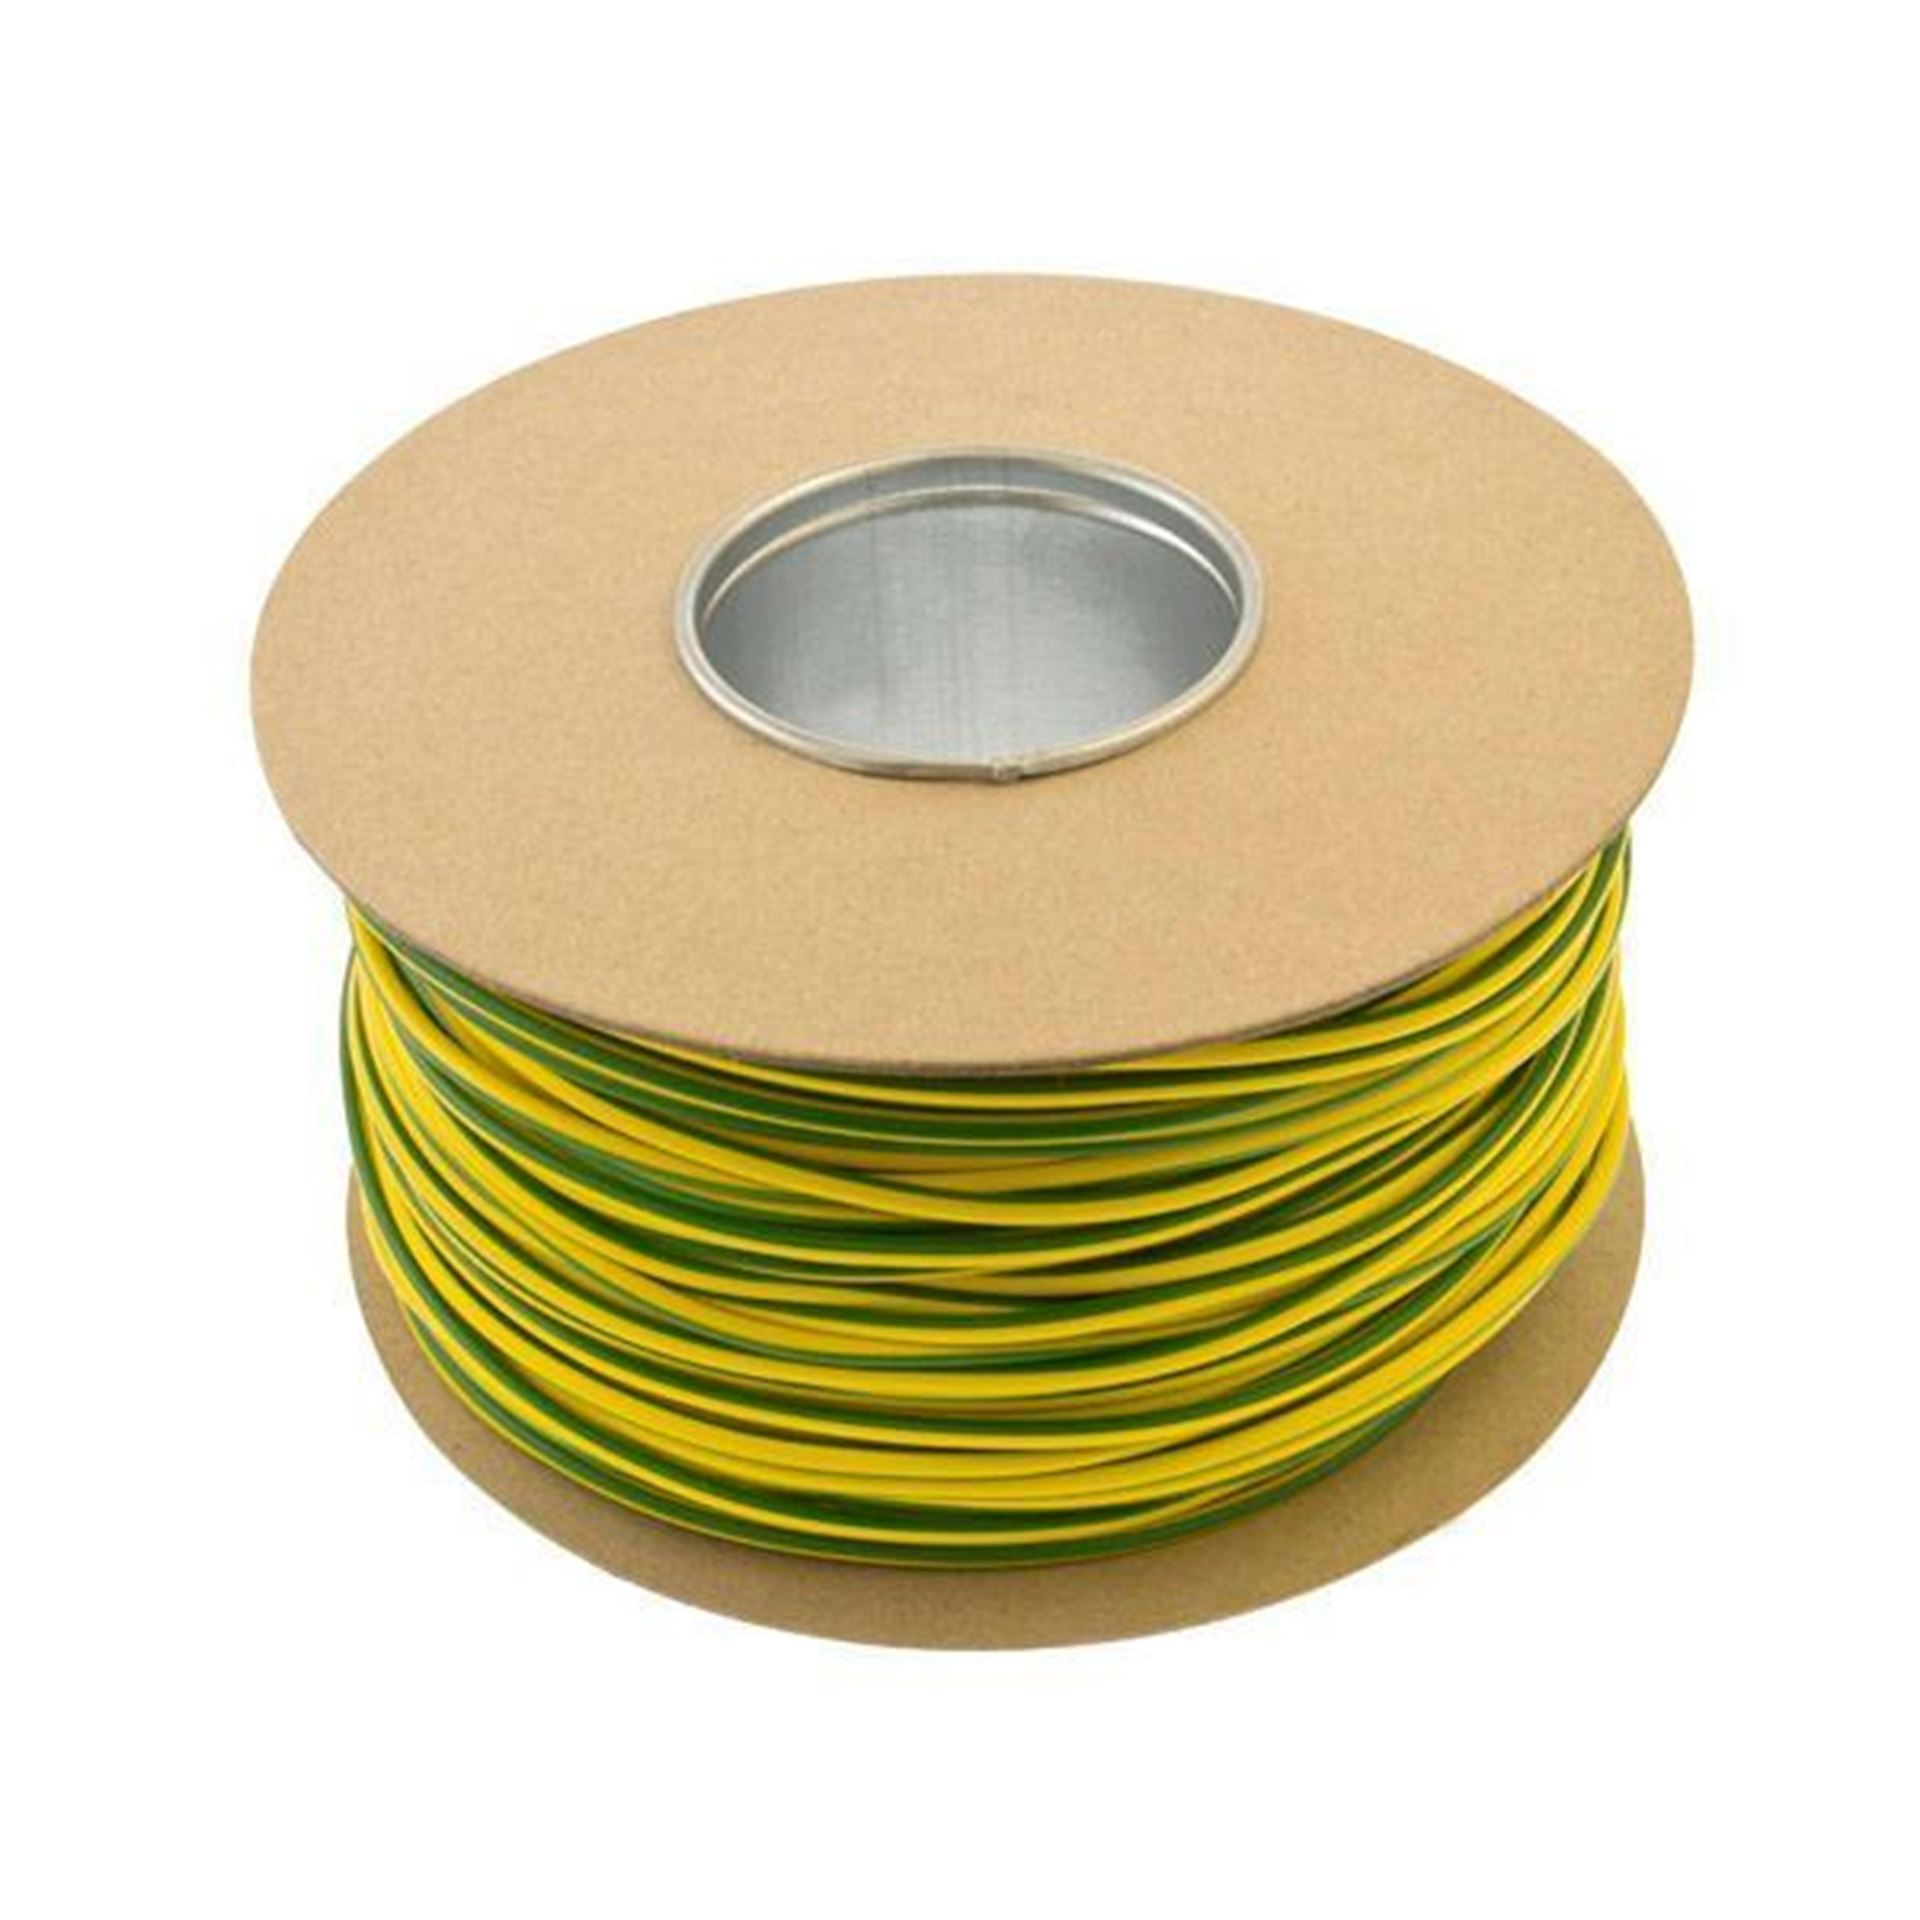 Unicrimp QES5 Green & Yellow PVC 5mm Earth Cable Sleeving 100m